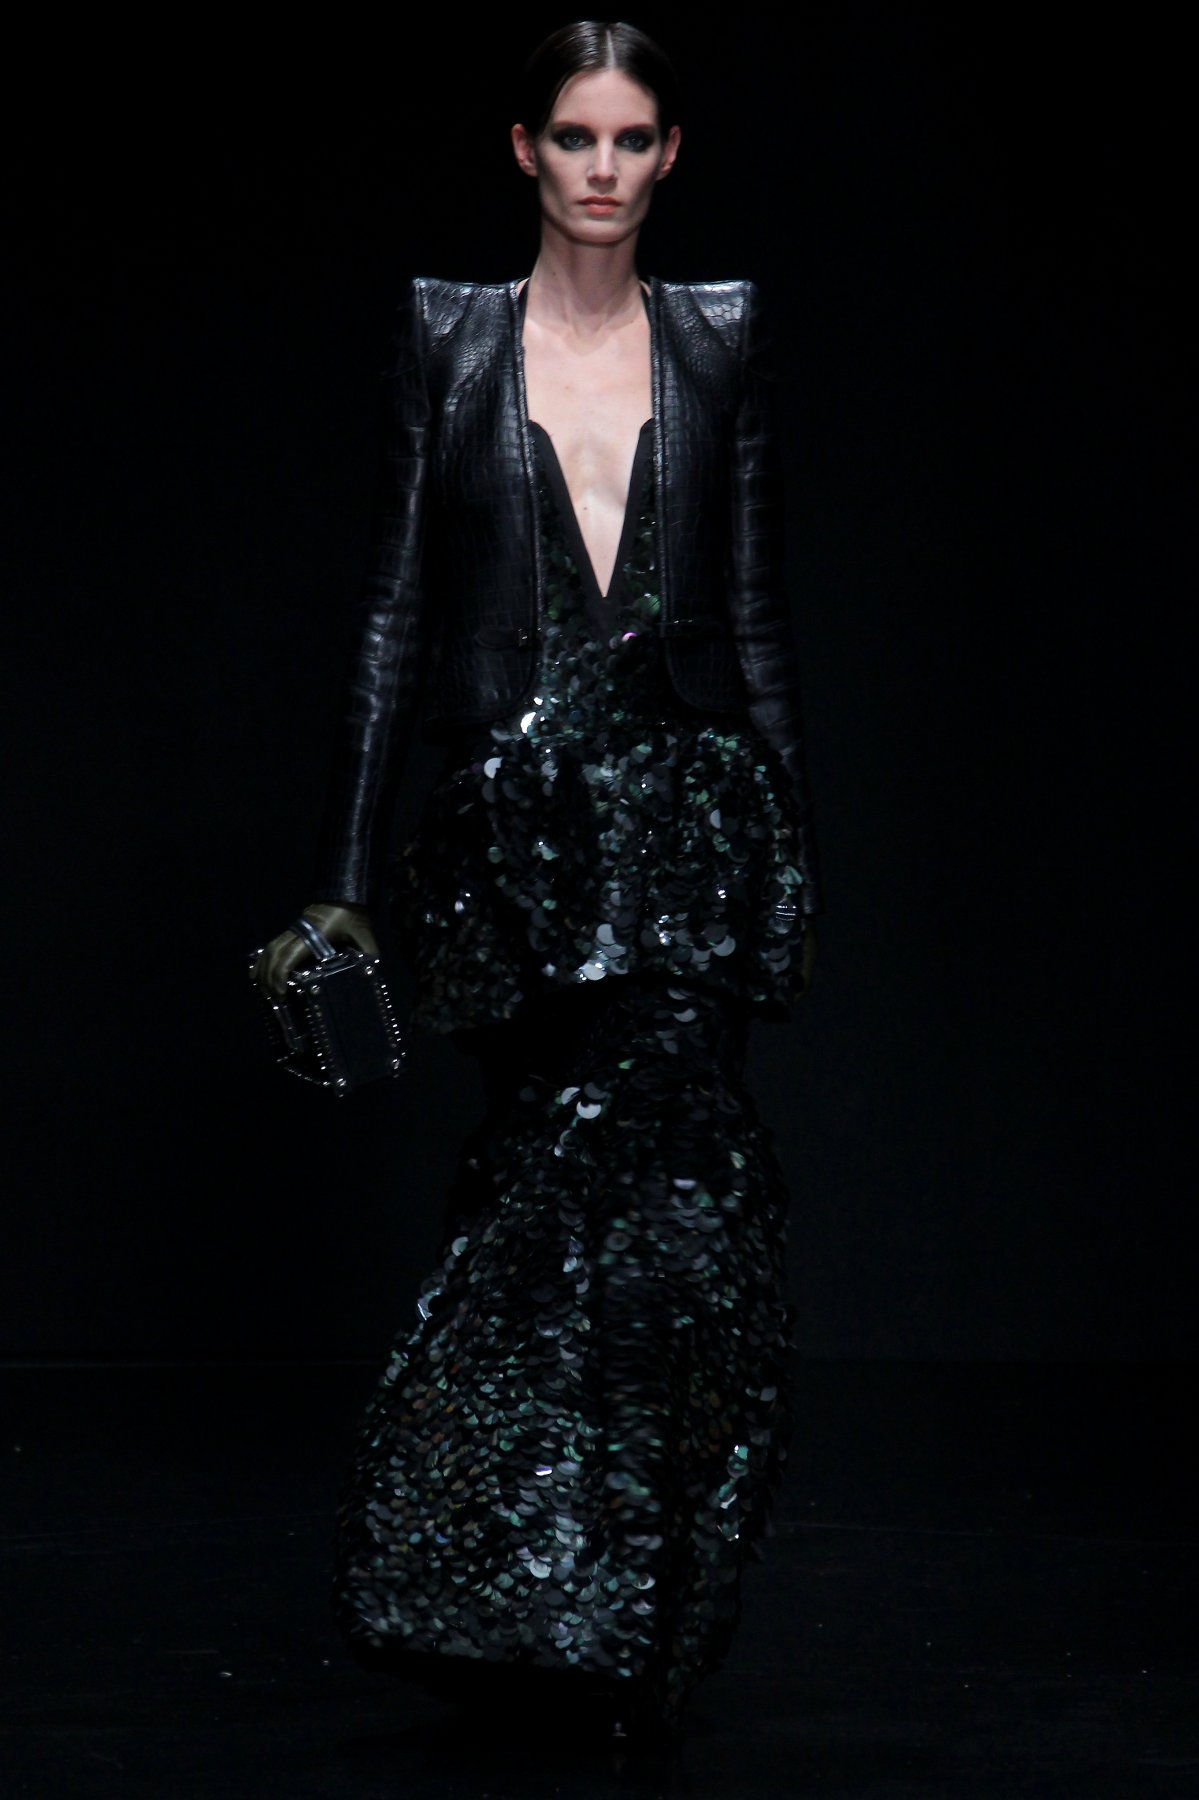 Roberto Cavalli Fall Winter Women's Collection 2012-2013